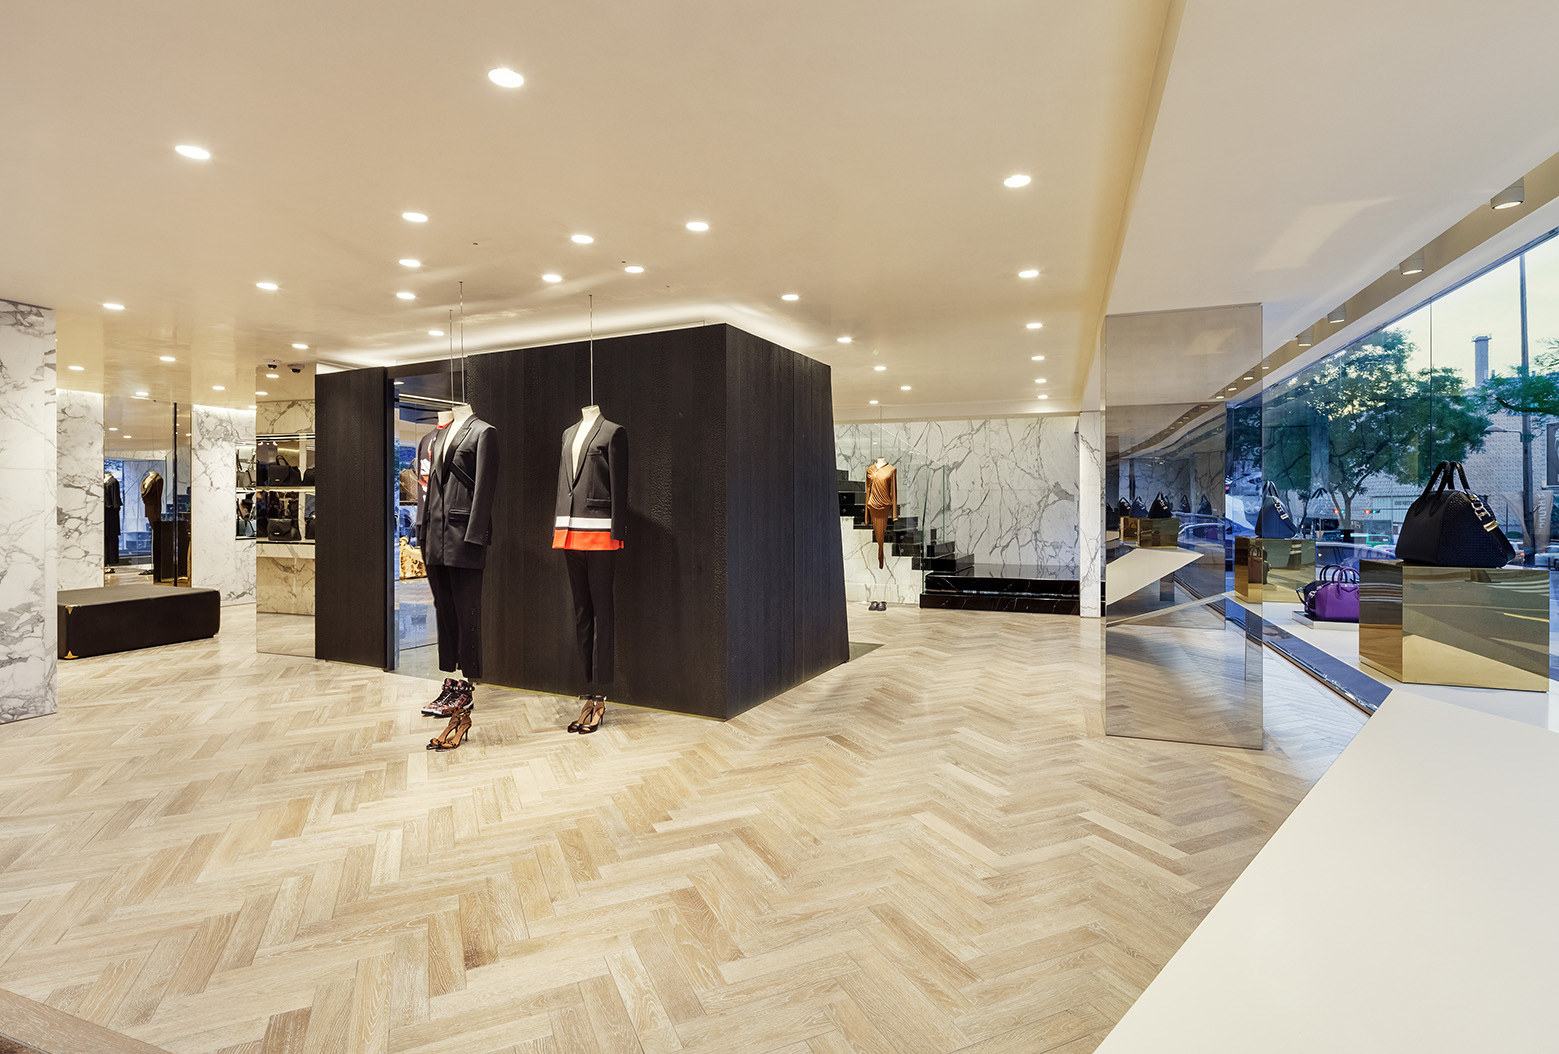 givenchy-flagship-store-in-seoul-piuarch-01